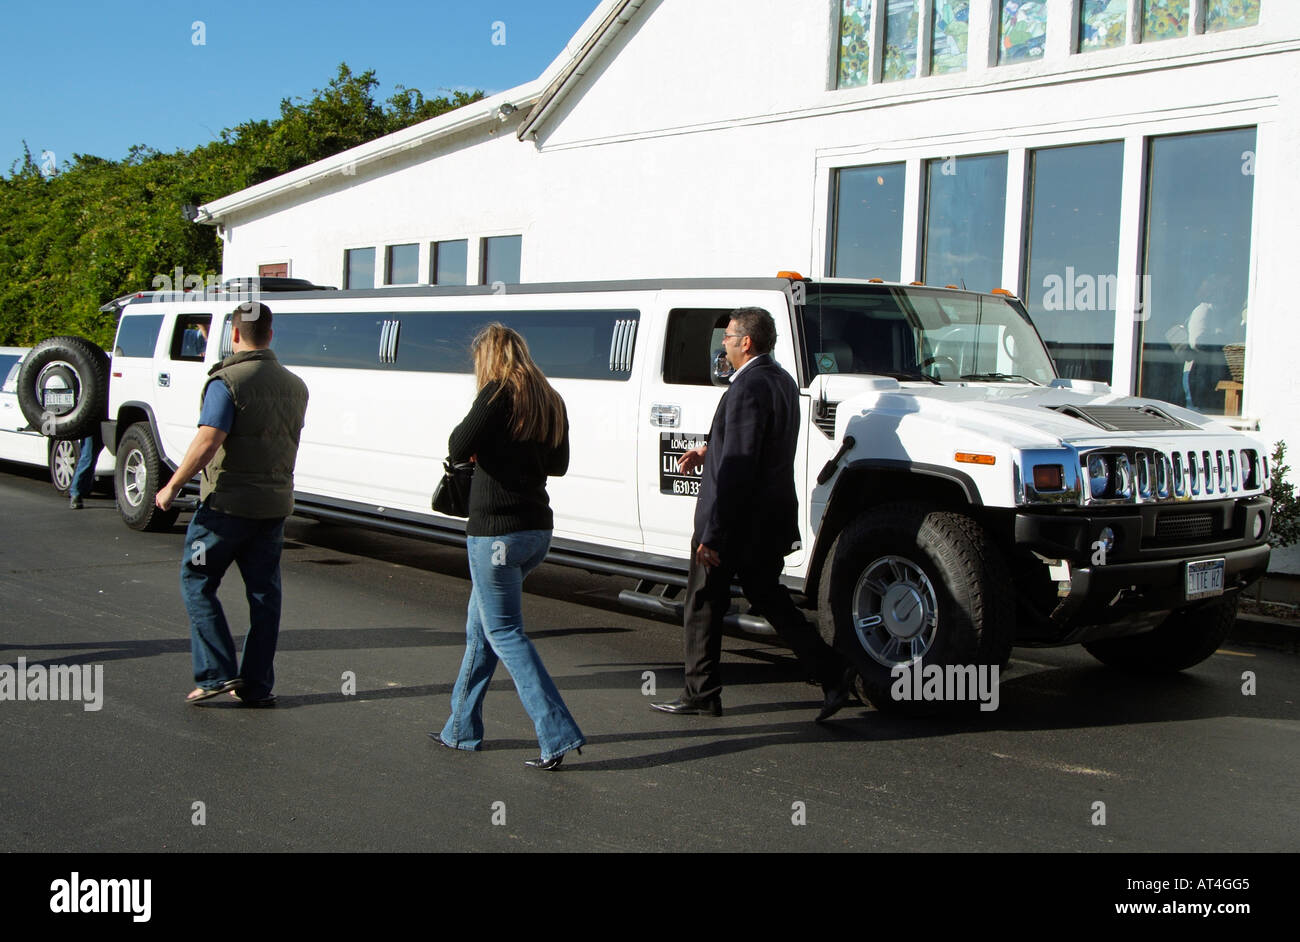 A Stretched Hummer Limo Made By General Motors USA Seen Here On - Pink hummer limo long island